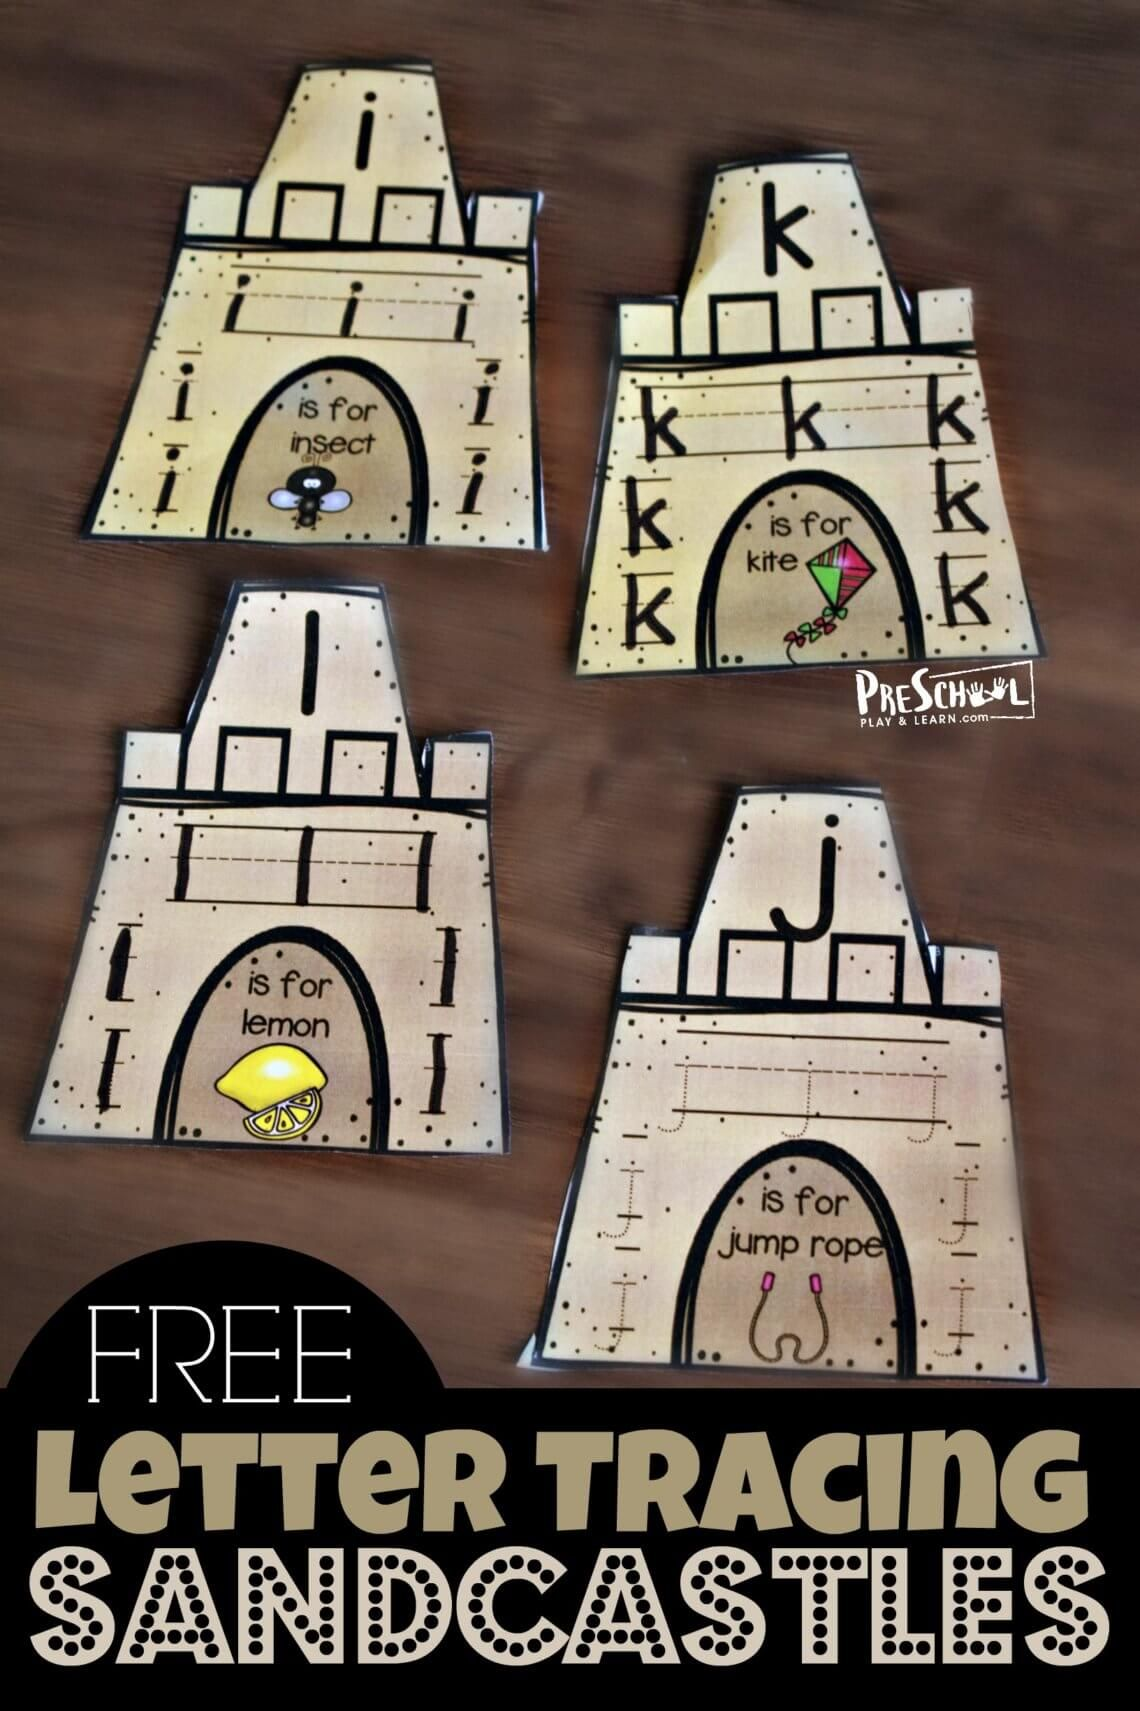 Free Letter Tracing Sandcastles